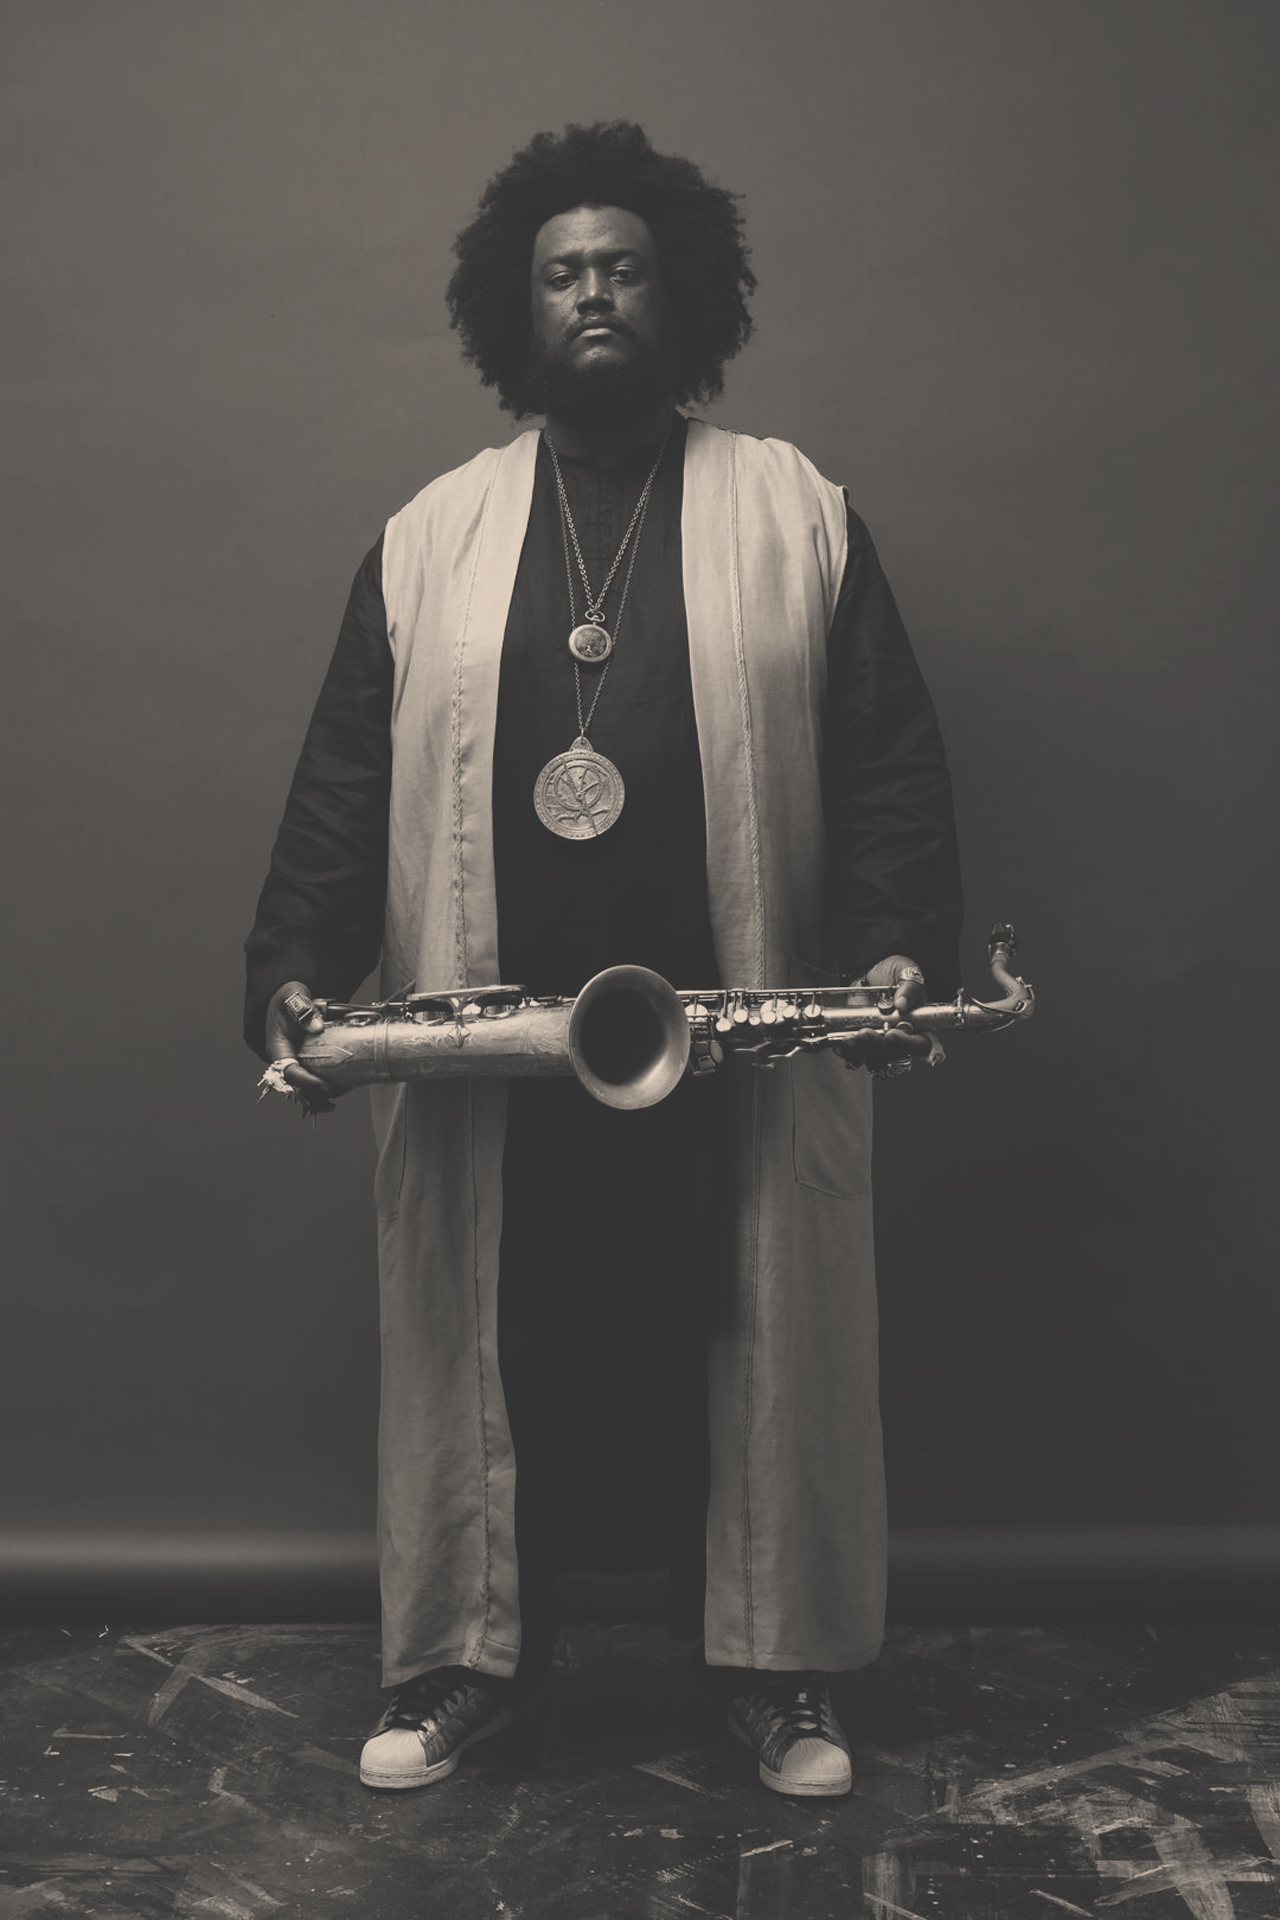 """Kamasi Washington - A critically acclaimed artist, Kamasi Washington debut album, The Epic, won numerous """"best of"""" awards, including the inaugural American Music Prize and the Gilles Peterson Worldwide album of the year.Collective Minds brought the seminal figure to Singapore and Bali."""